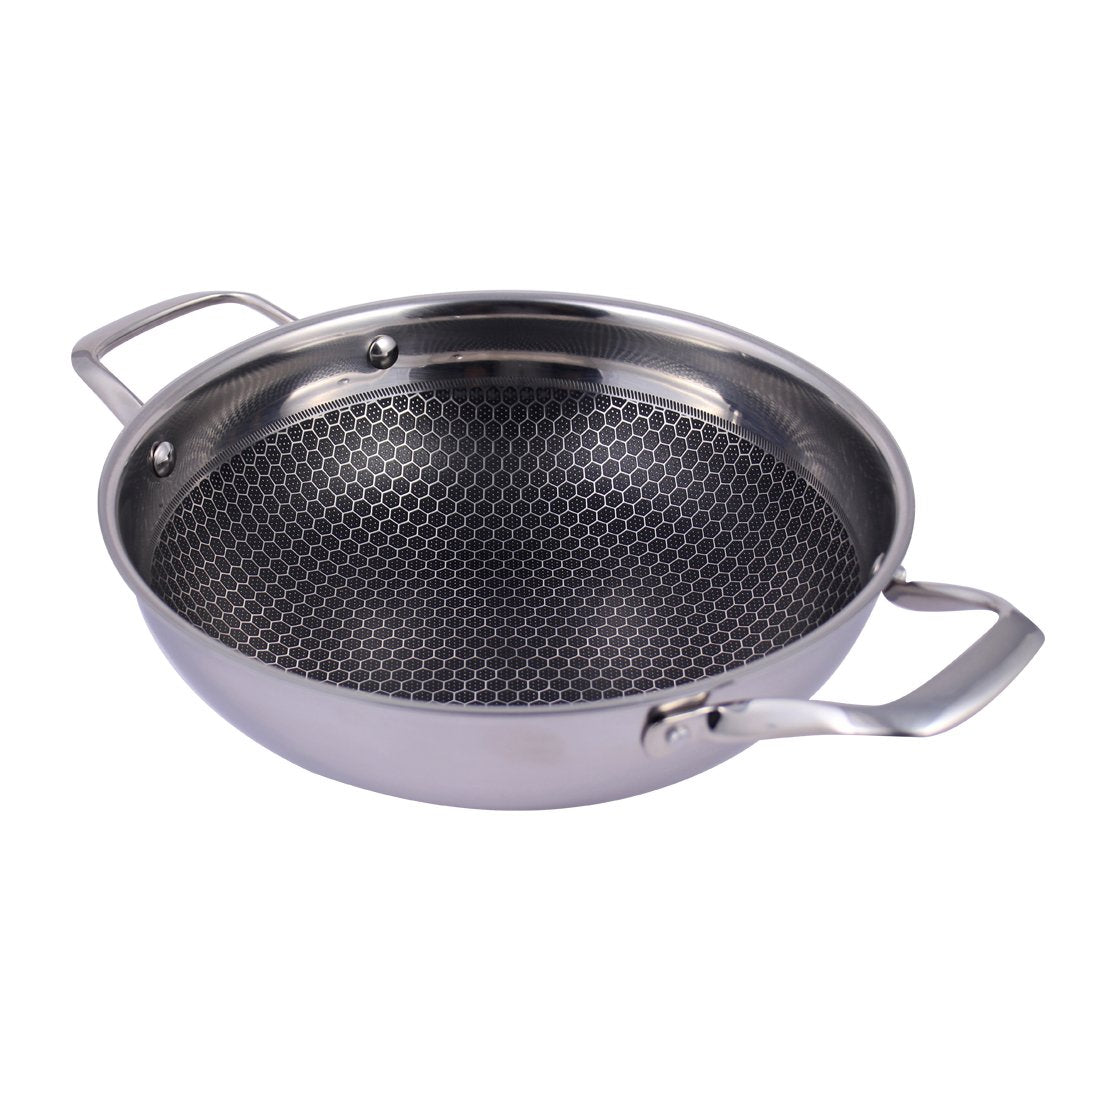 Stanton Stainless Steel Nonstick Kadhai with Lid 24cm, 2L, Silver